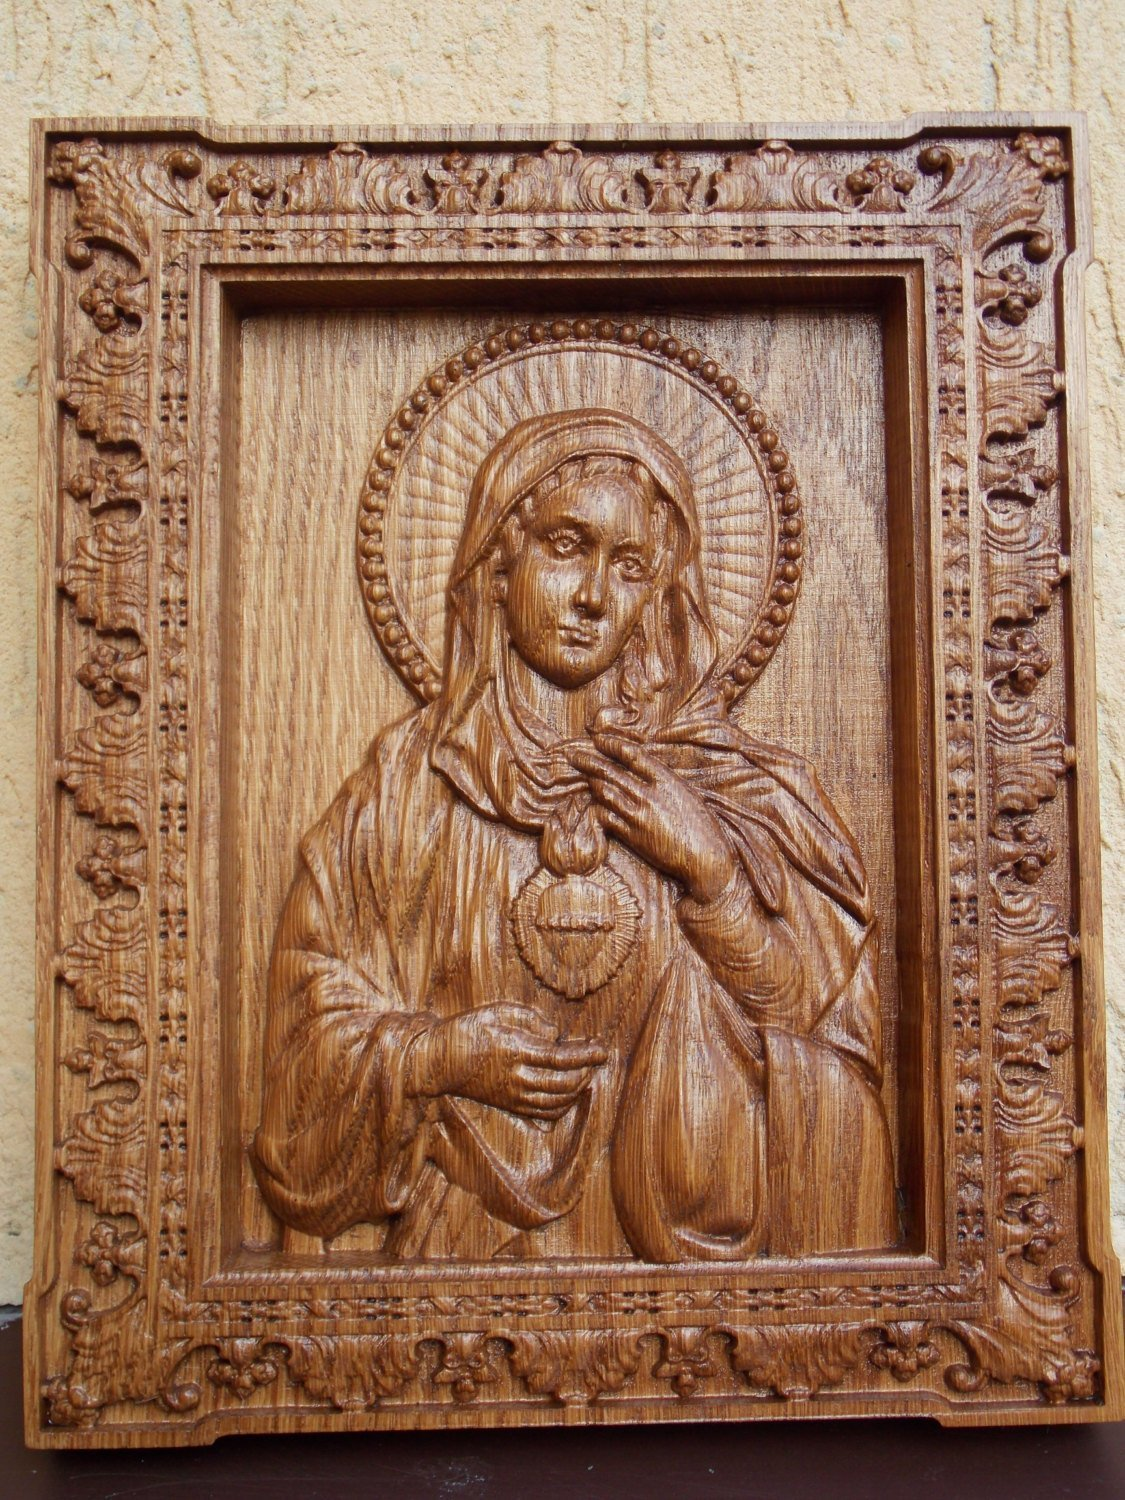 Immaculate Heart of Mary Catholic Icons Wood wedding anniversary personalized gift Wood Carved religious wall plaque FREE ENGRAVING FREE SHIPPING